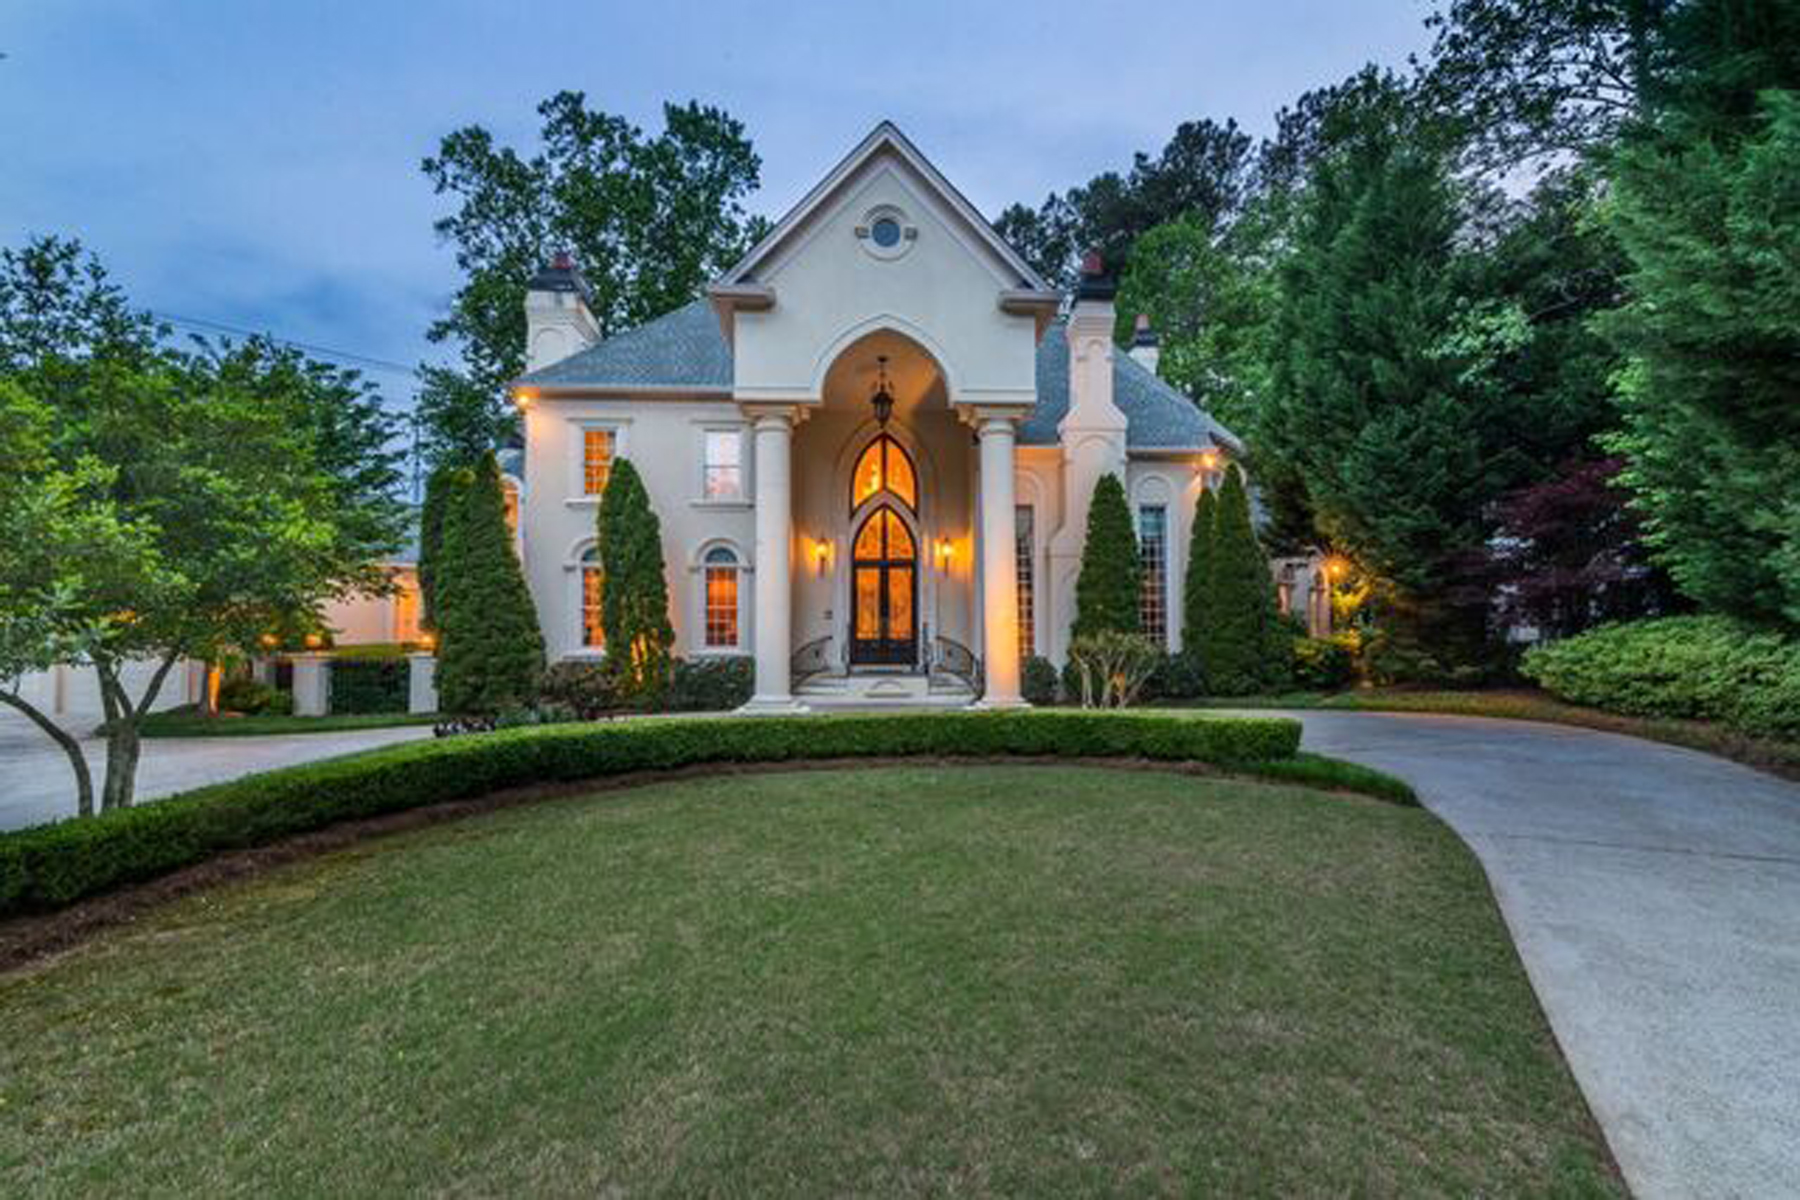 Single Family Home for Sale at Exquisite Custom Home In Walton District 5400 Beau Reve Park Marietta, Georgia, 30068 United States